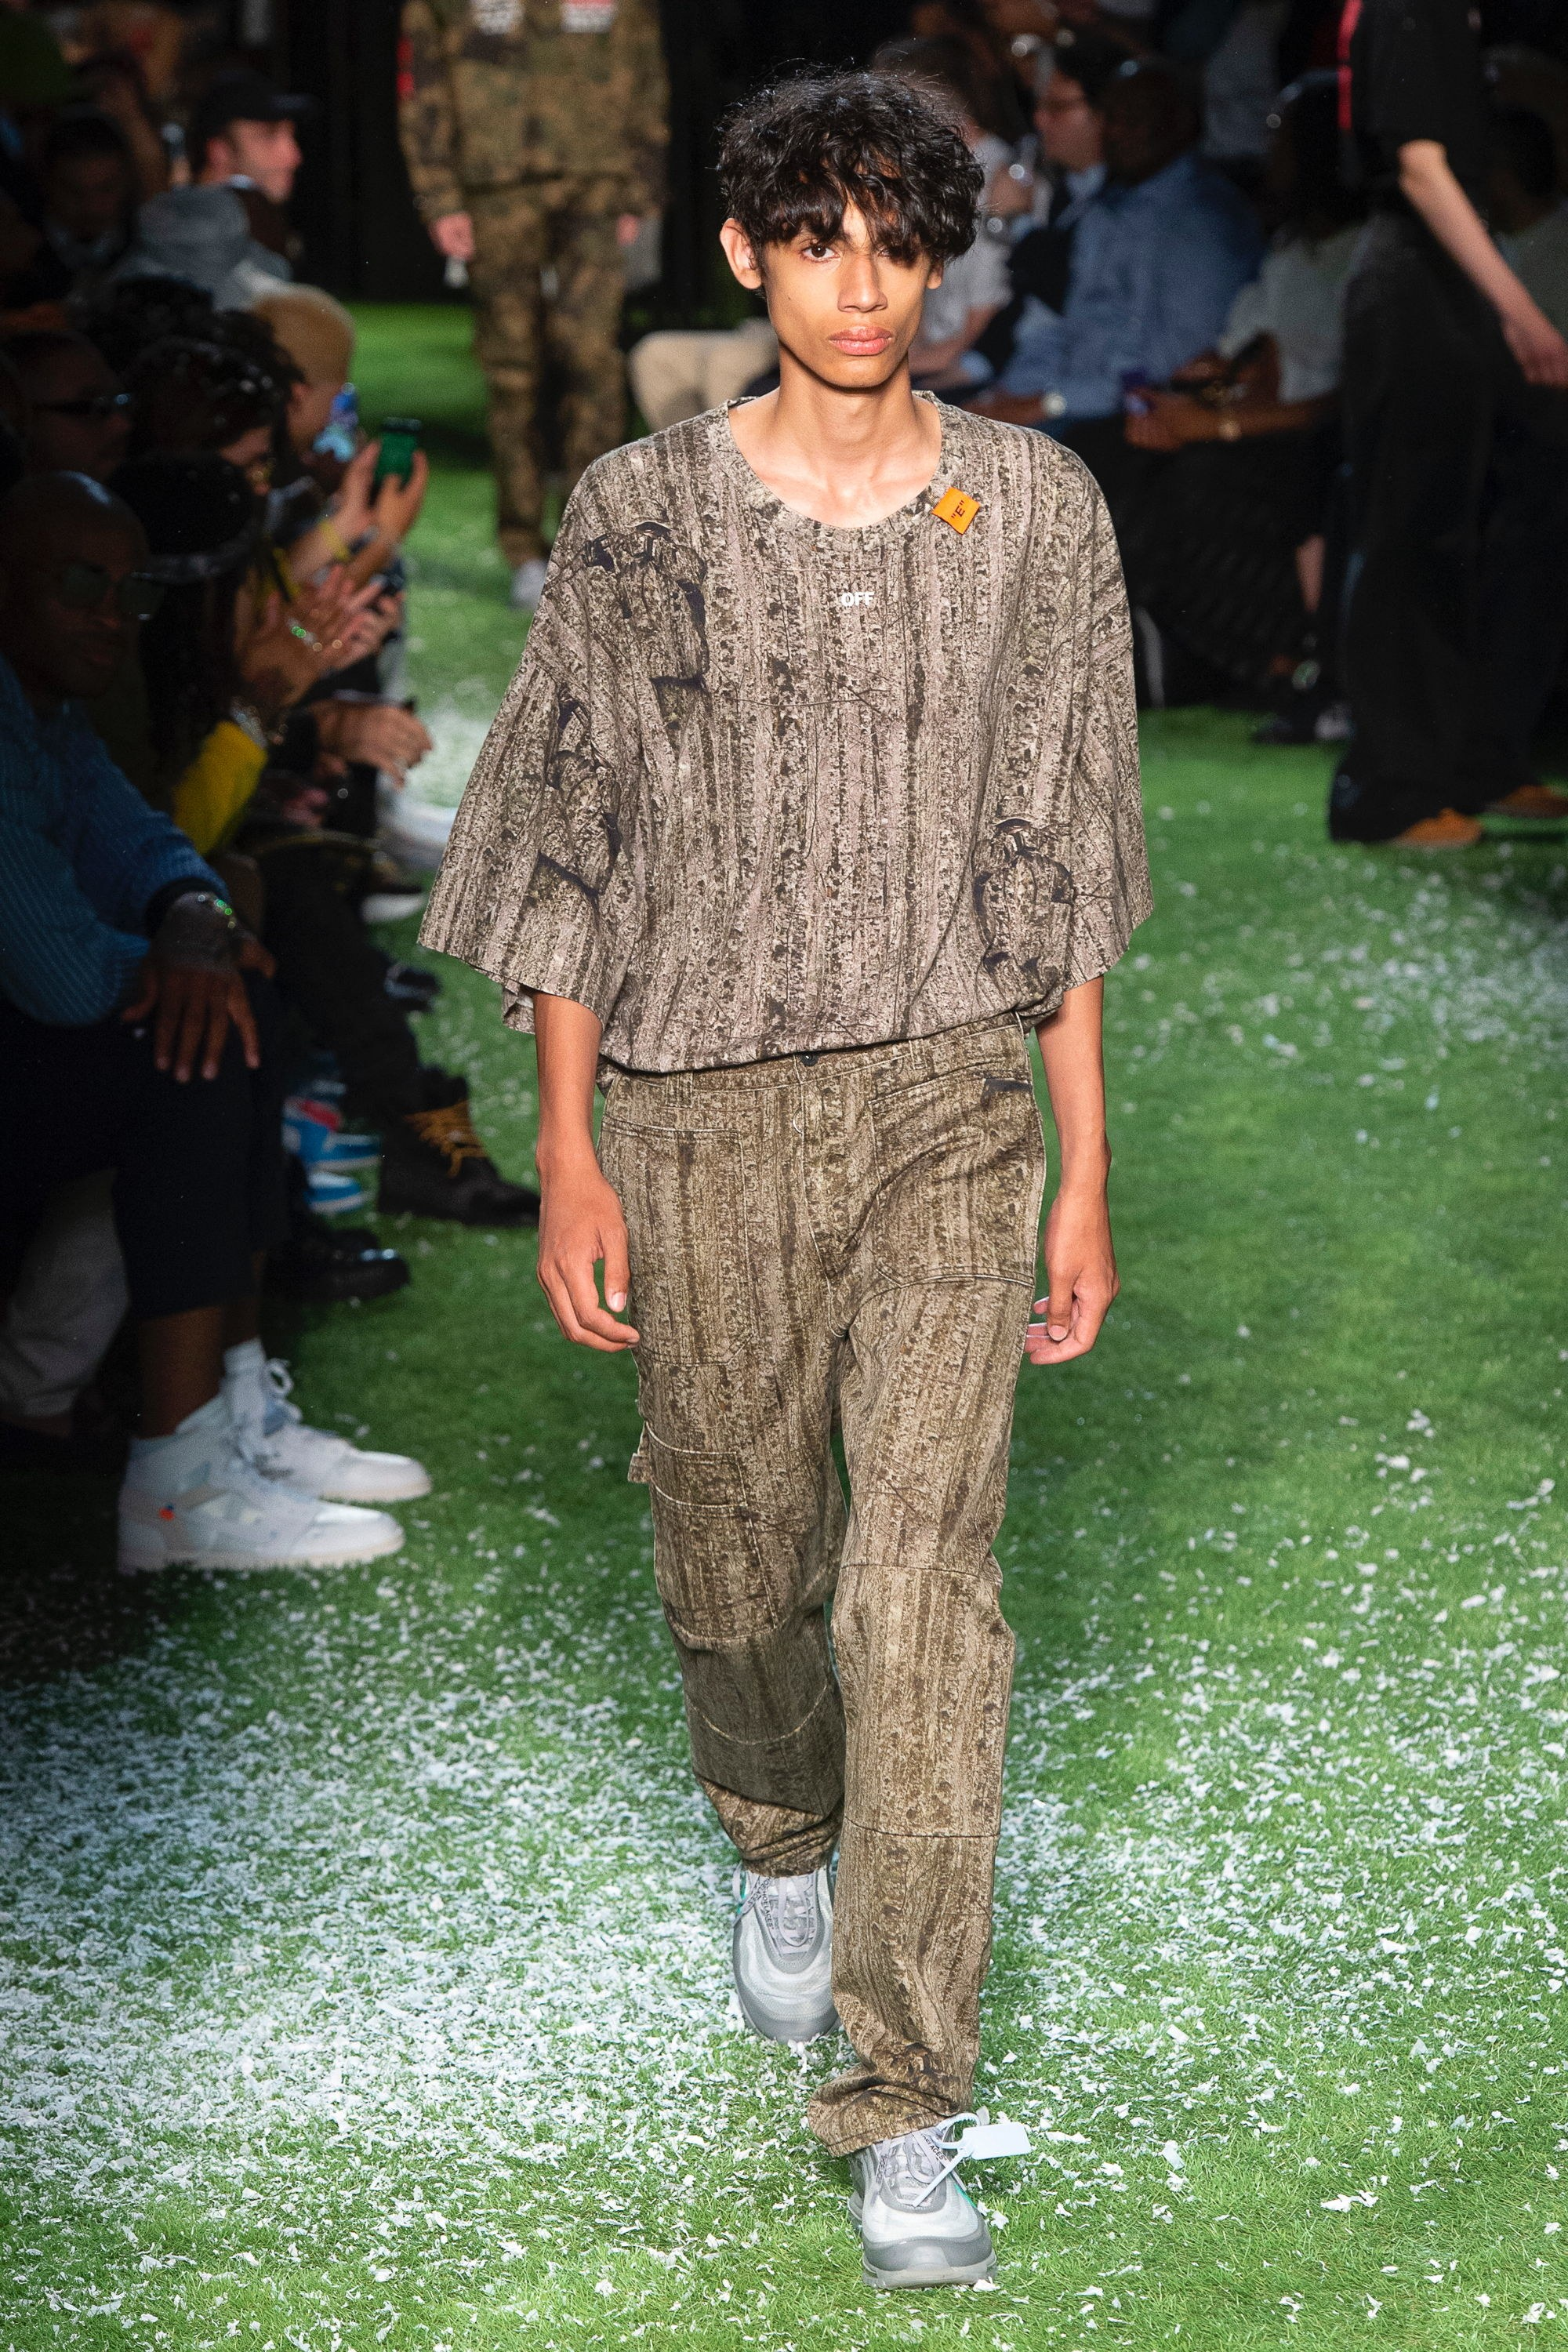 virgil-abloh-off-white-2019-spring-summer-menswear-collection-20180620